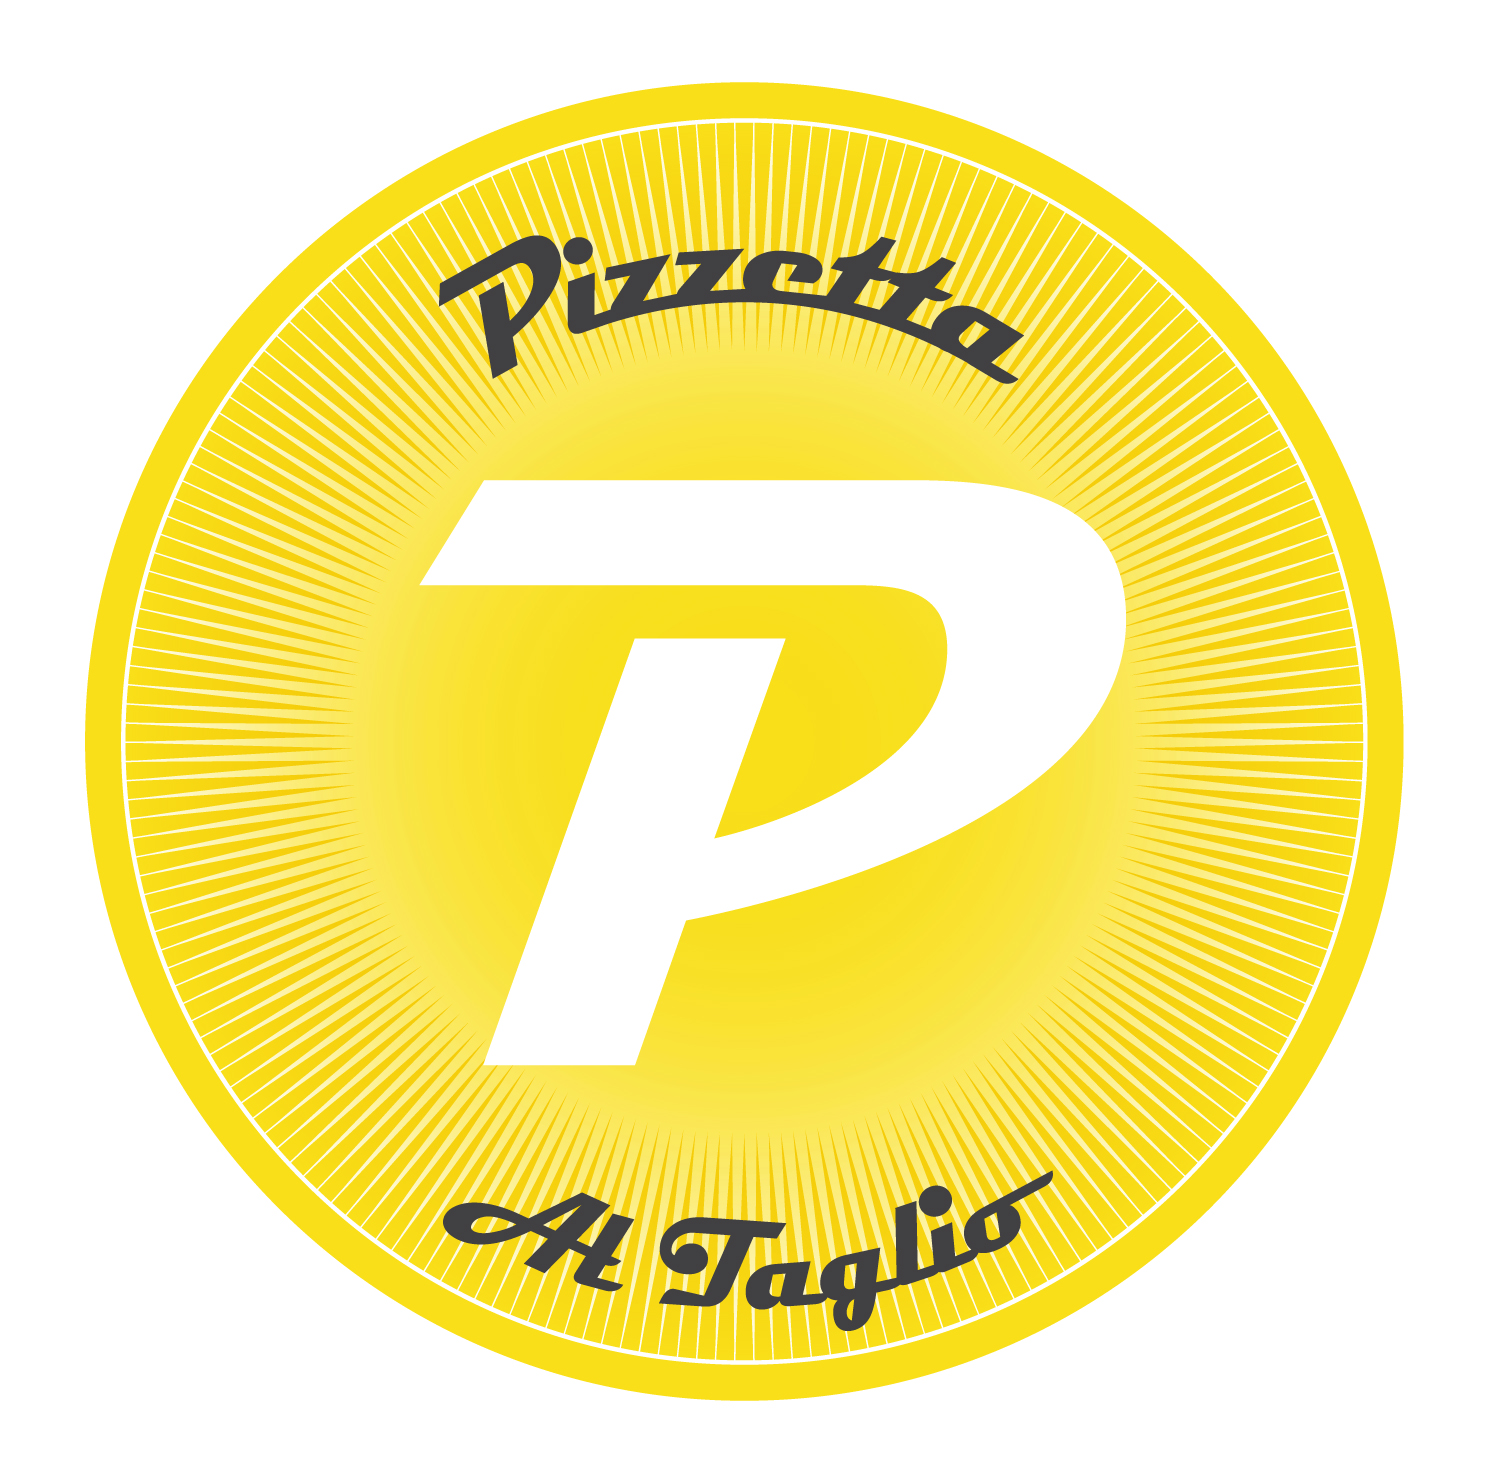 DELIVERIES - OFFICE LUNCHES, MEETINGS & PARTIES. PIZZETTA CAN DELIVER THE FRESHEST PIZZA AND CAKES TO YOUR OFFICE -FOR FREE!